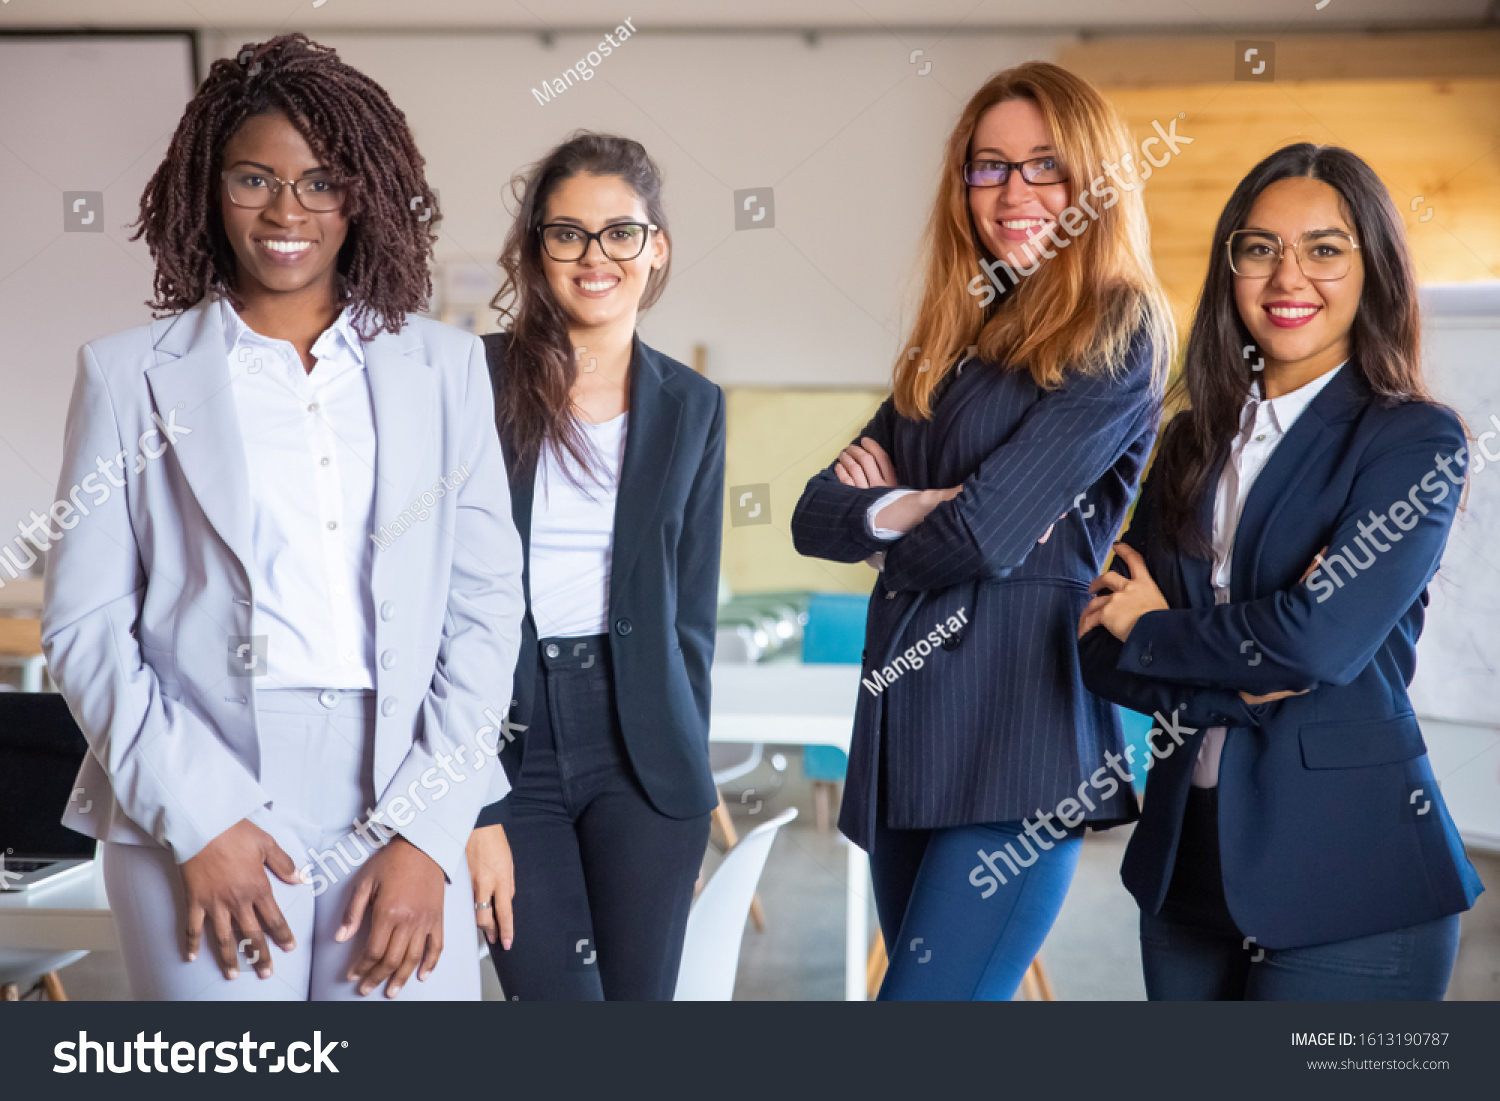 Group of confident young women looking at camera. Beautiful smiling businesswomen posing in modern office. Female confidence concept #1613190787